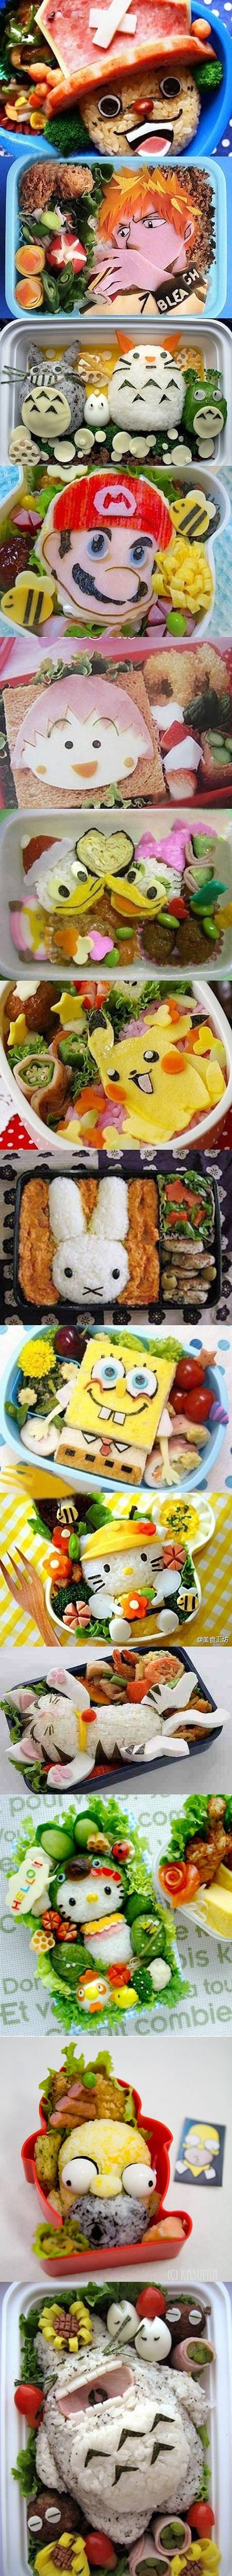 A collection of 14 awesome bento boxes that geeks would love.